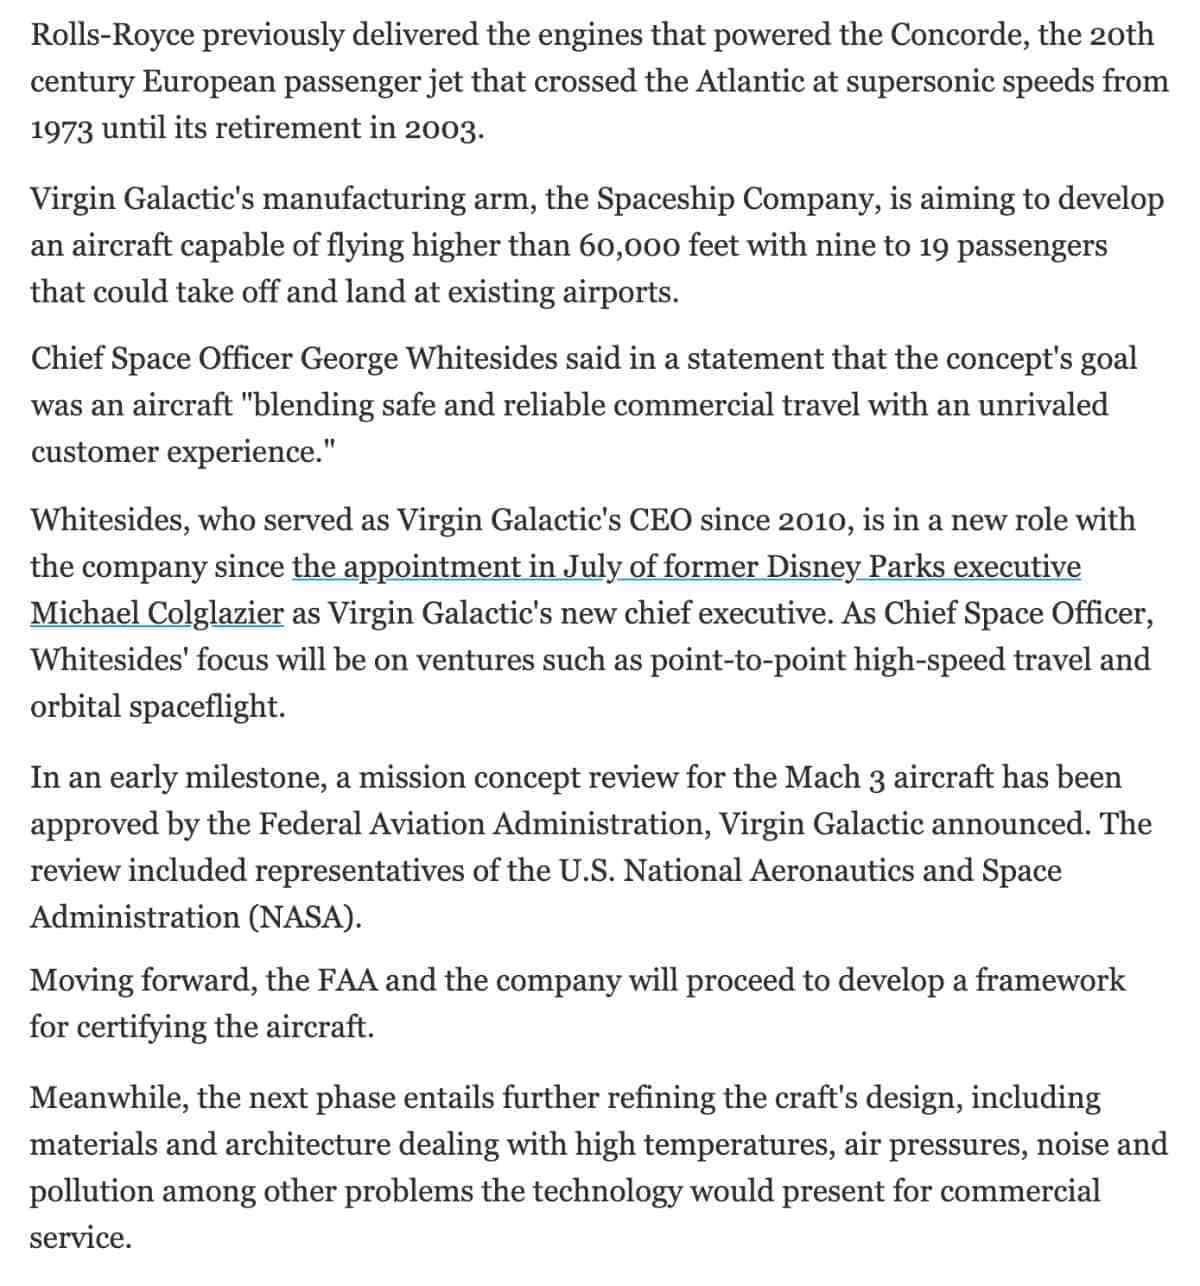 virgin galactic unveils high-speed aircraft design